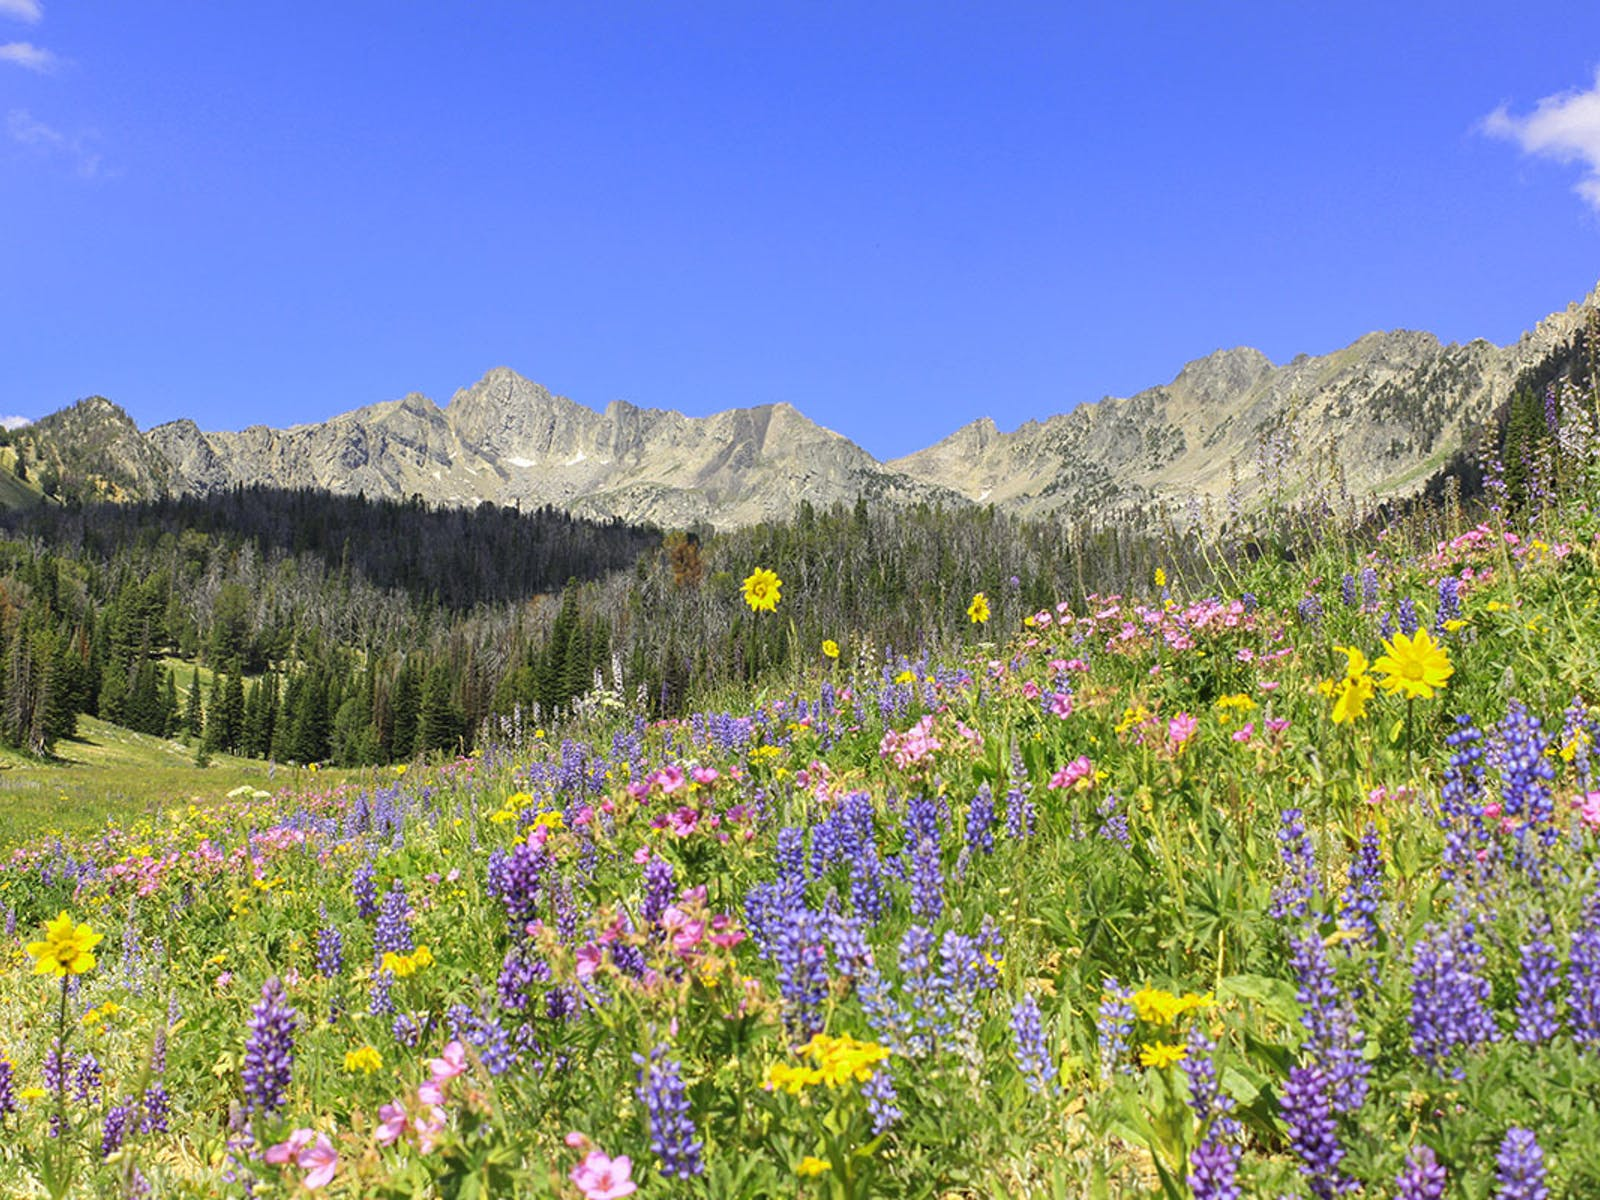 wildflowers and mountains from the Beehive Basin Trail